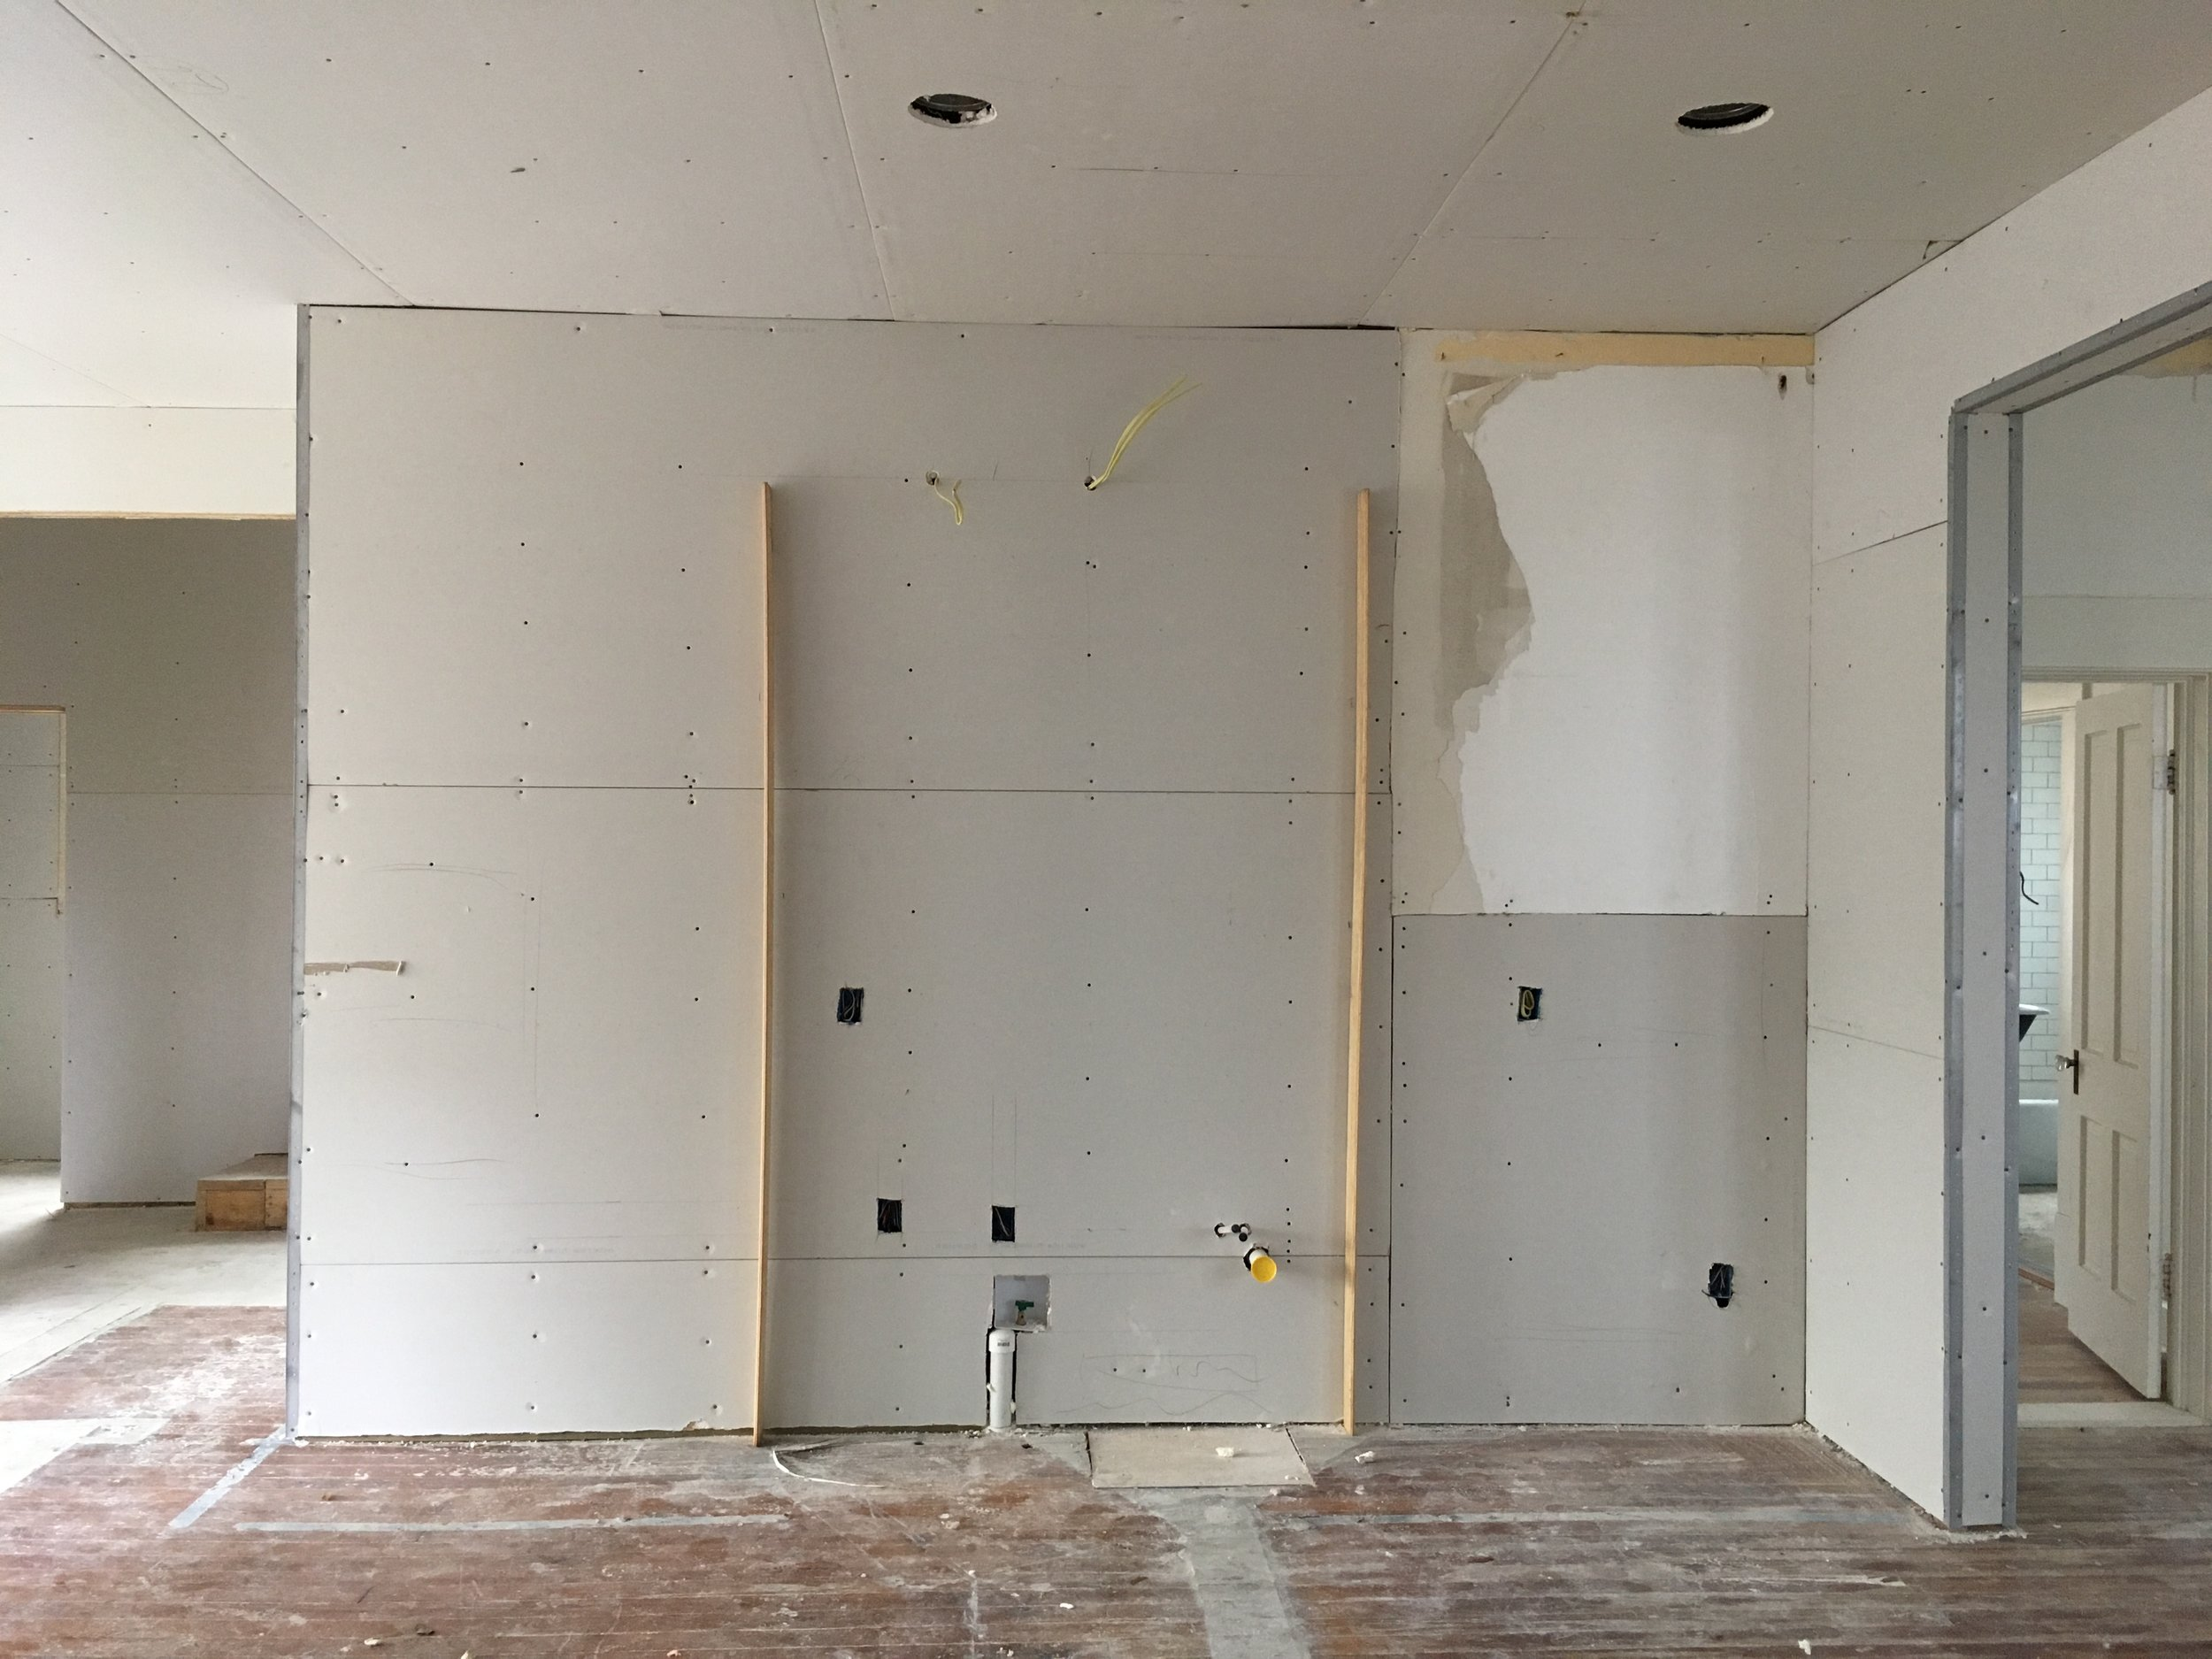 future pantry wall (yes the lights are in the wrong spot)